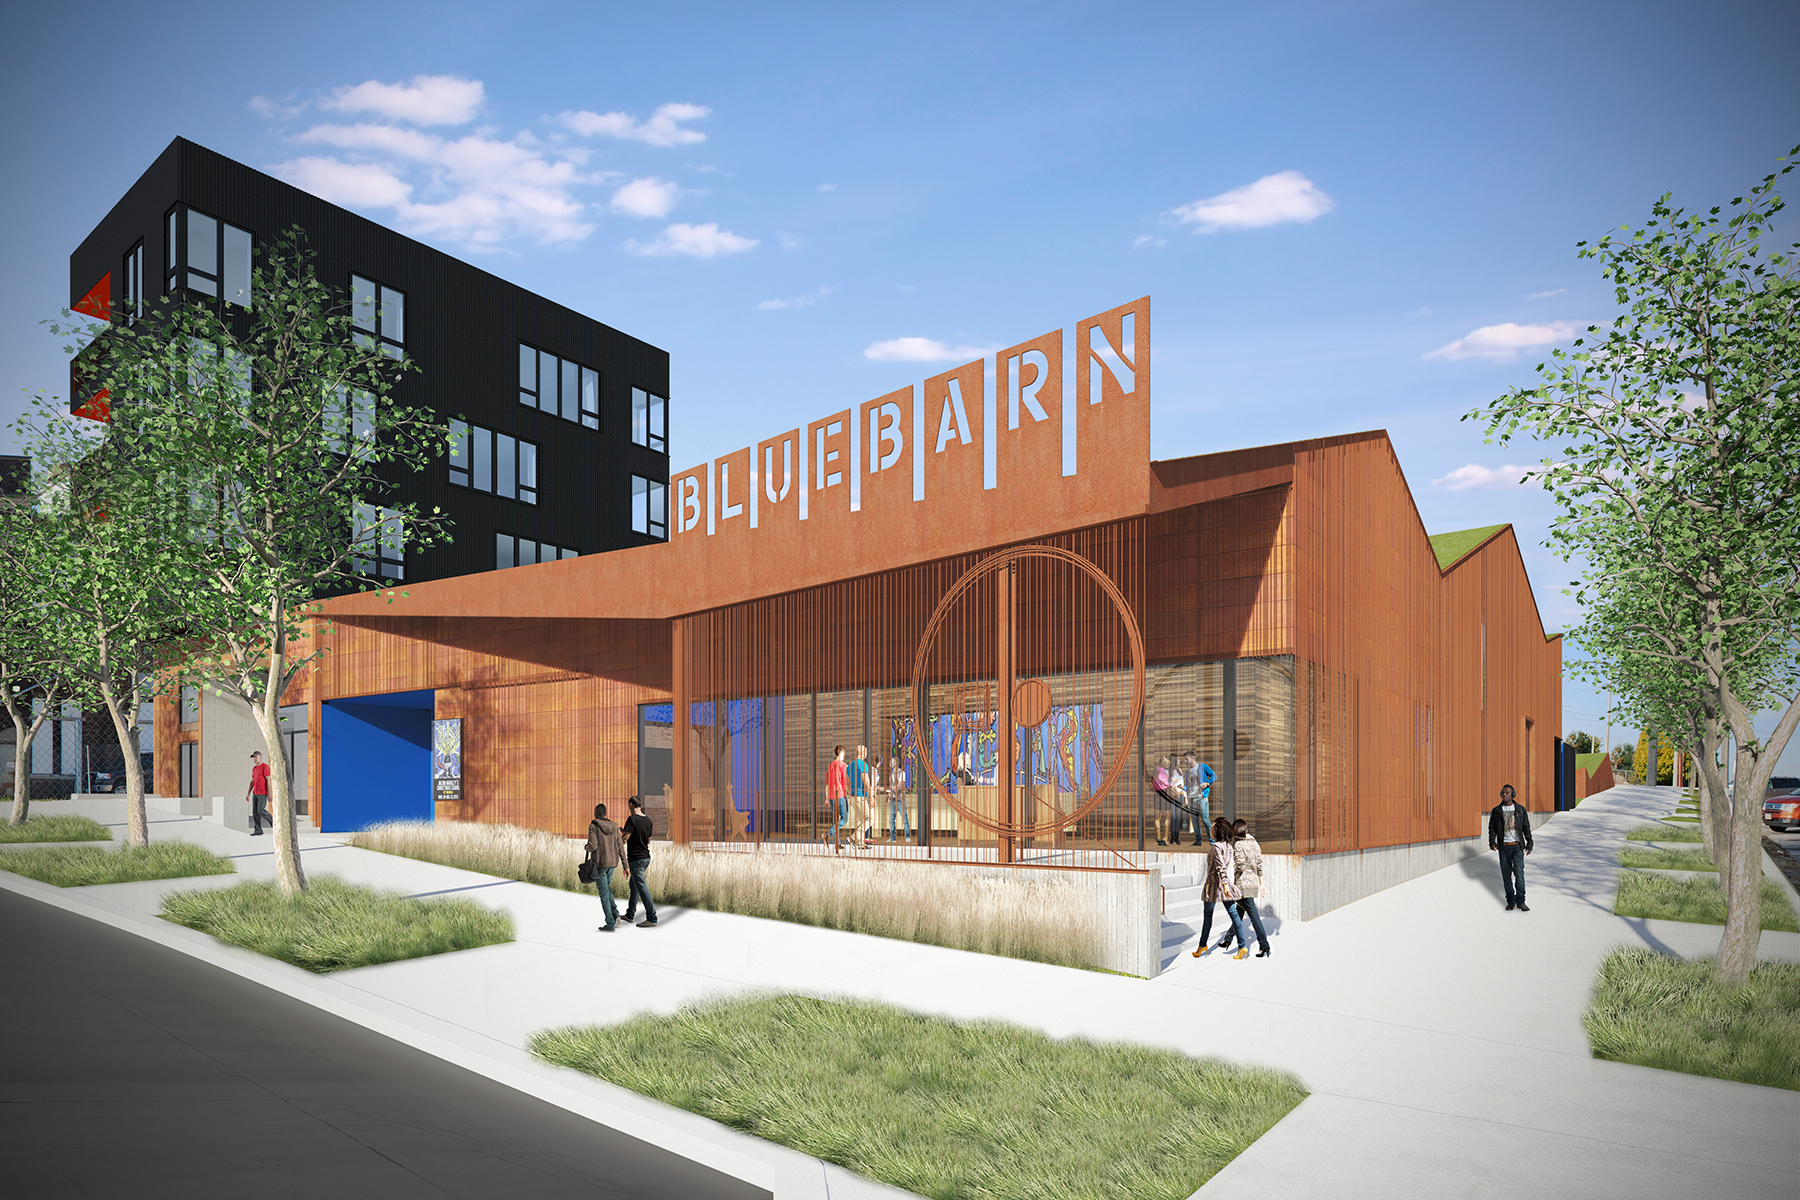 Bluebarn Theater/Boxcar Condominiums